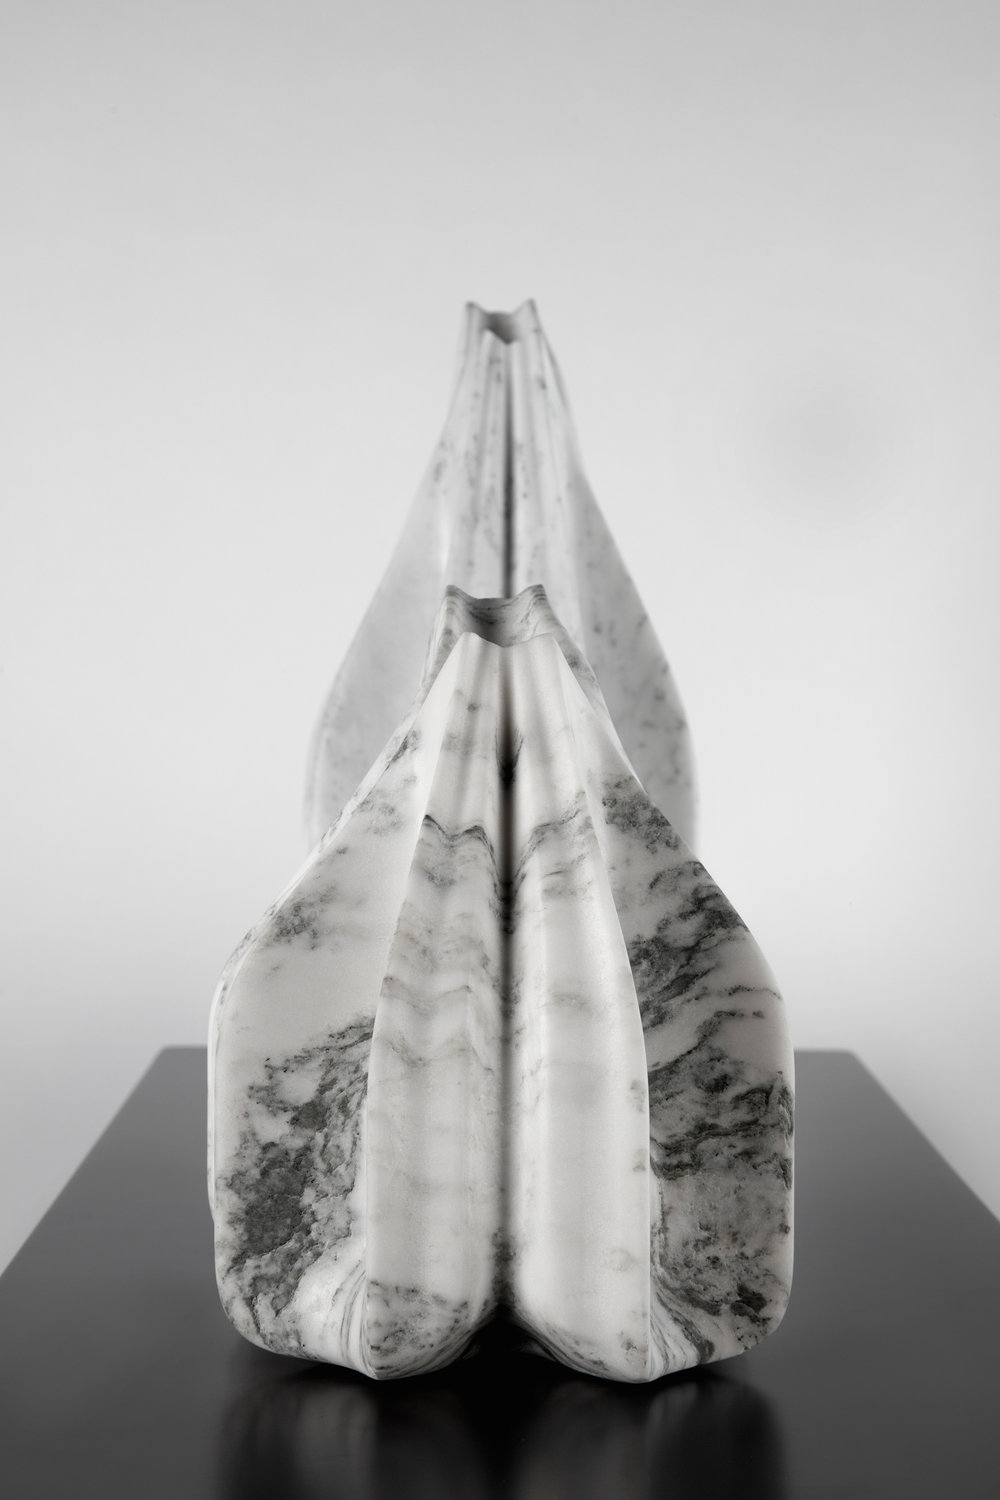 Ripple Vases - Robotically Fabricated Marble Vases